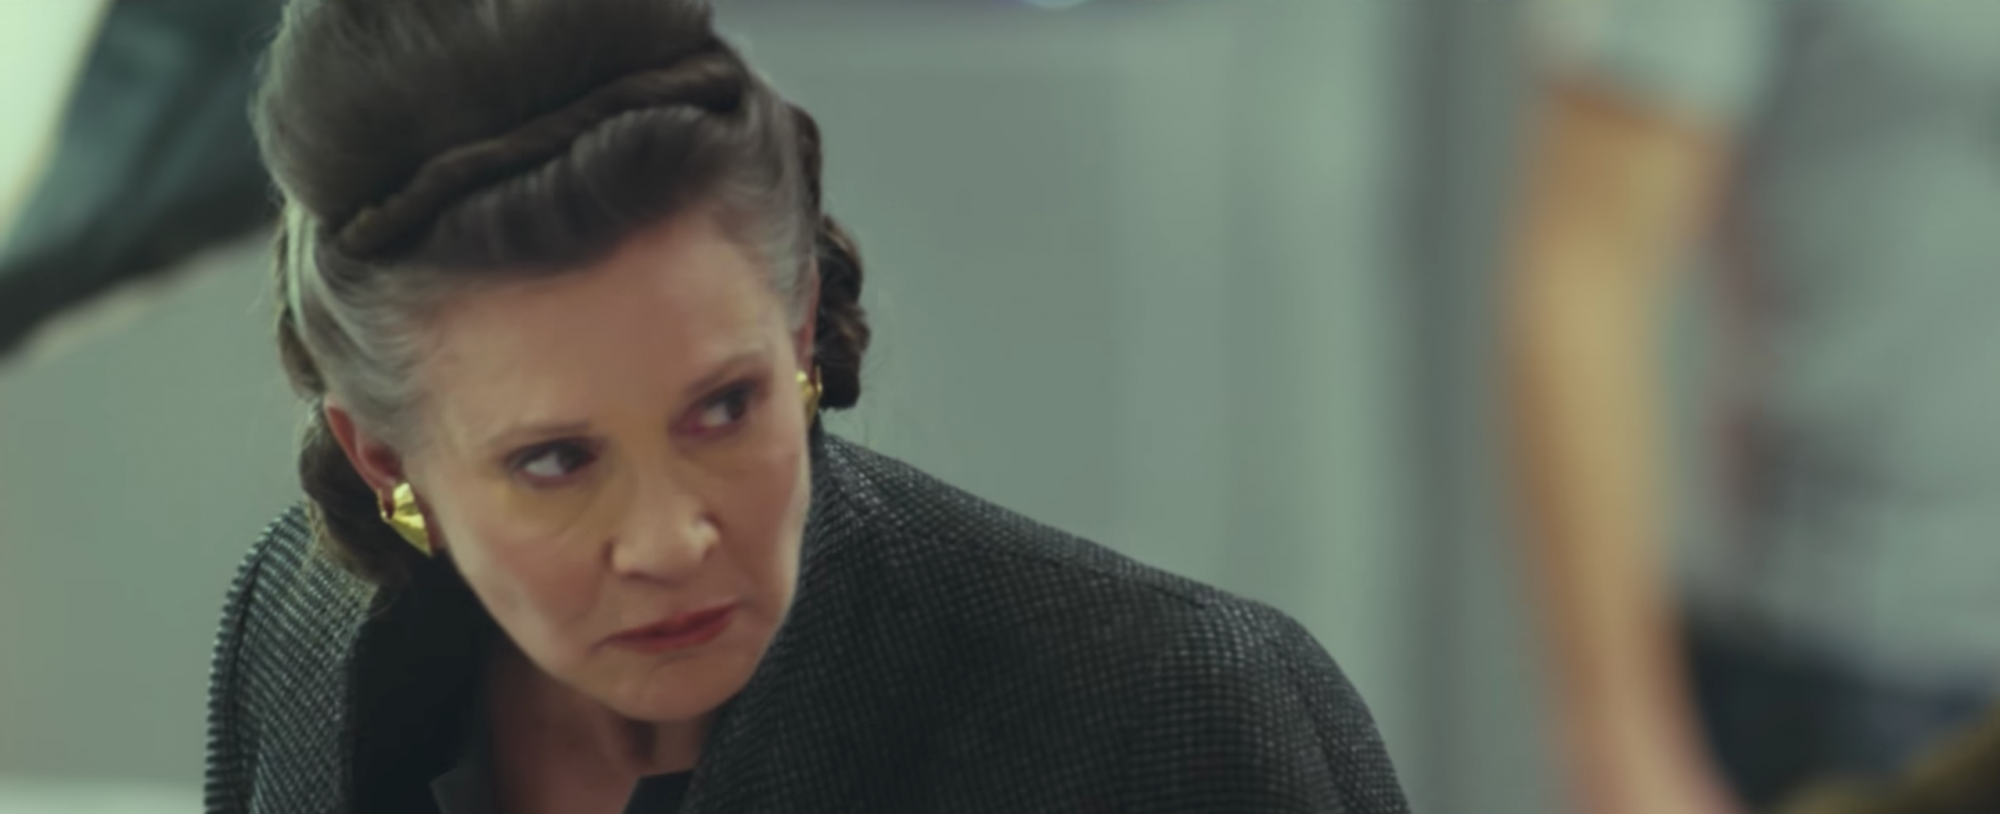 Carrie Fisher in Star Wars the Last Jedi